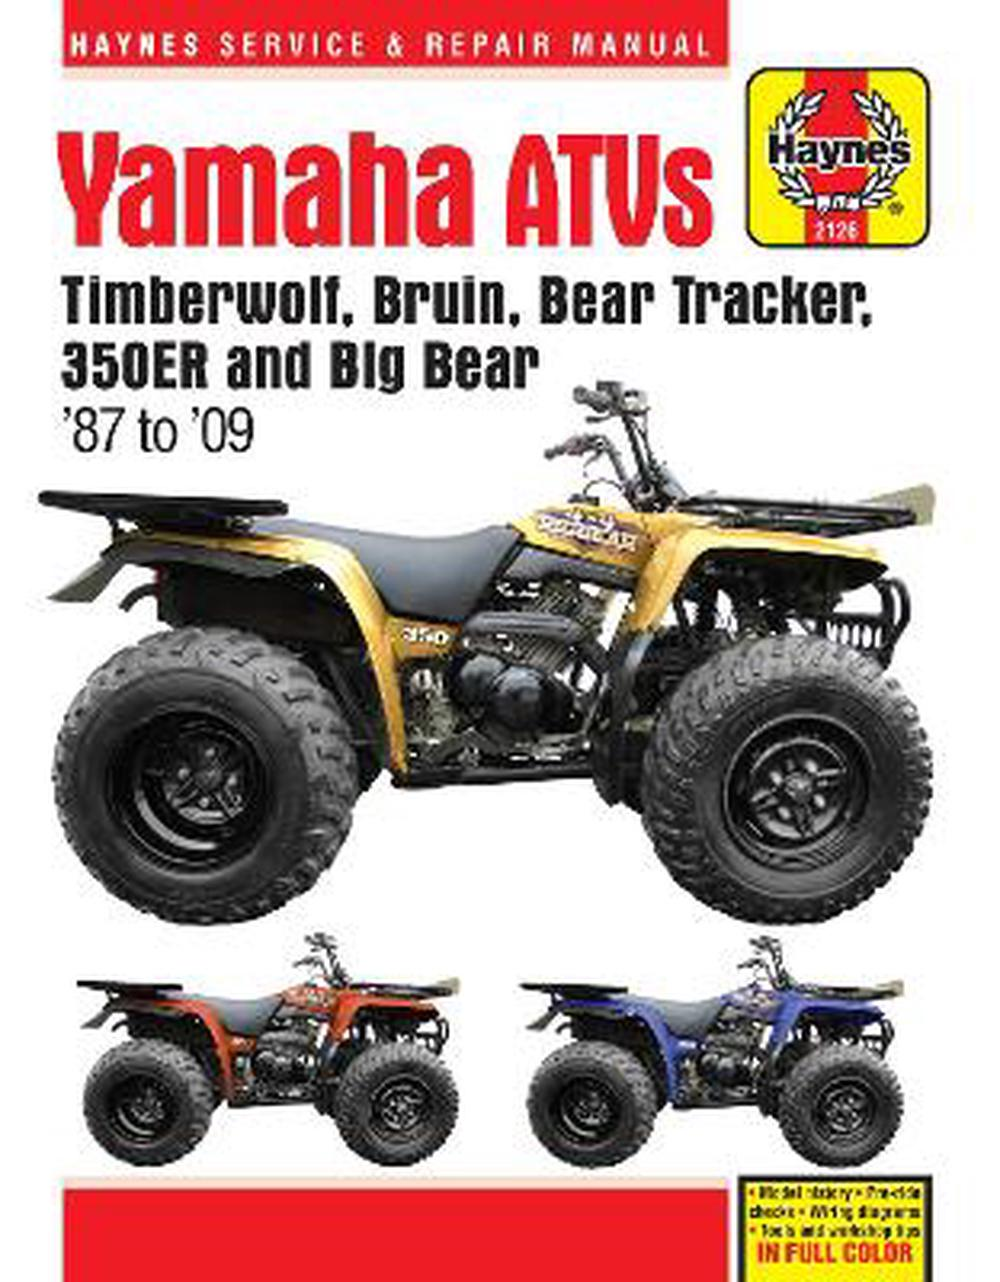 hight resolution of yamaha timberwolf bruin bear tracker 350er big bear atv repair manual by anon paperback 9781620921135 buy online at the nile